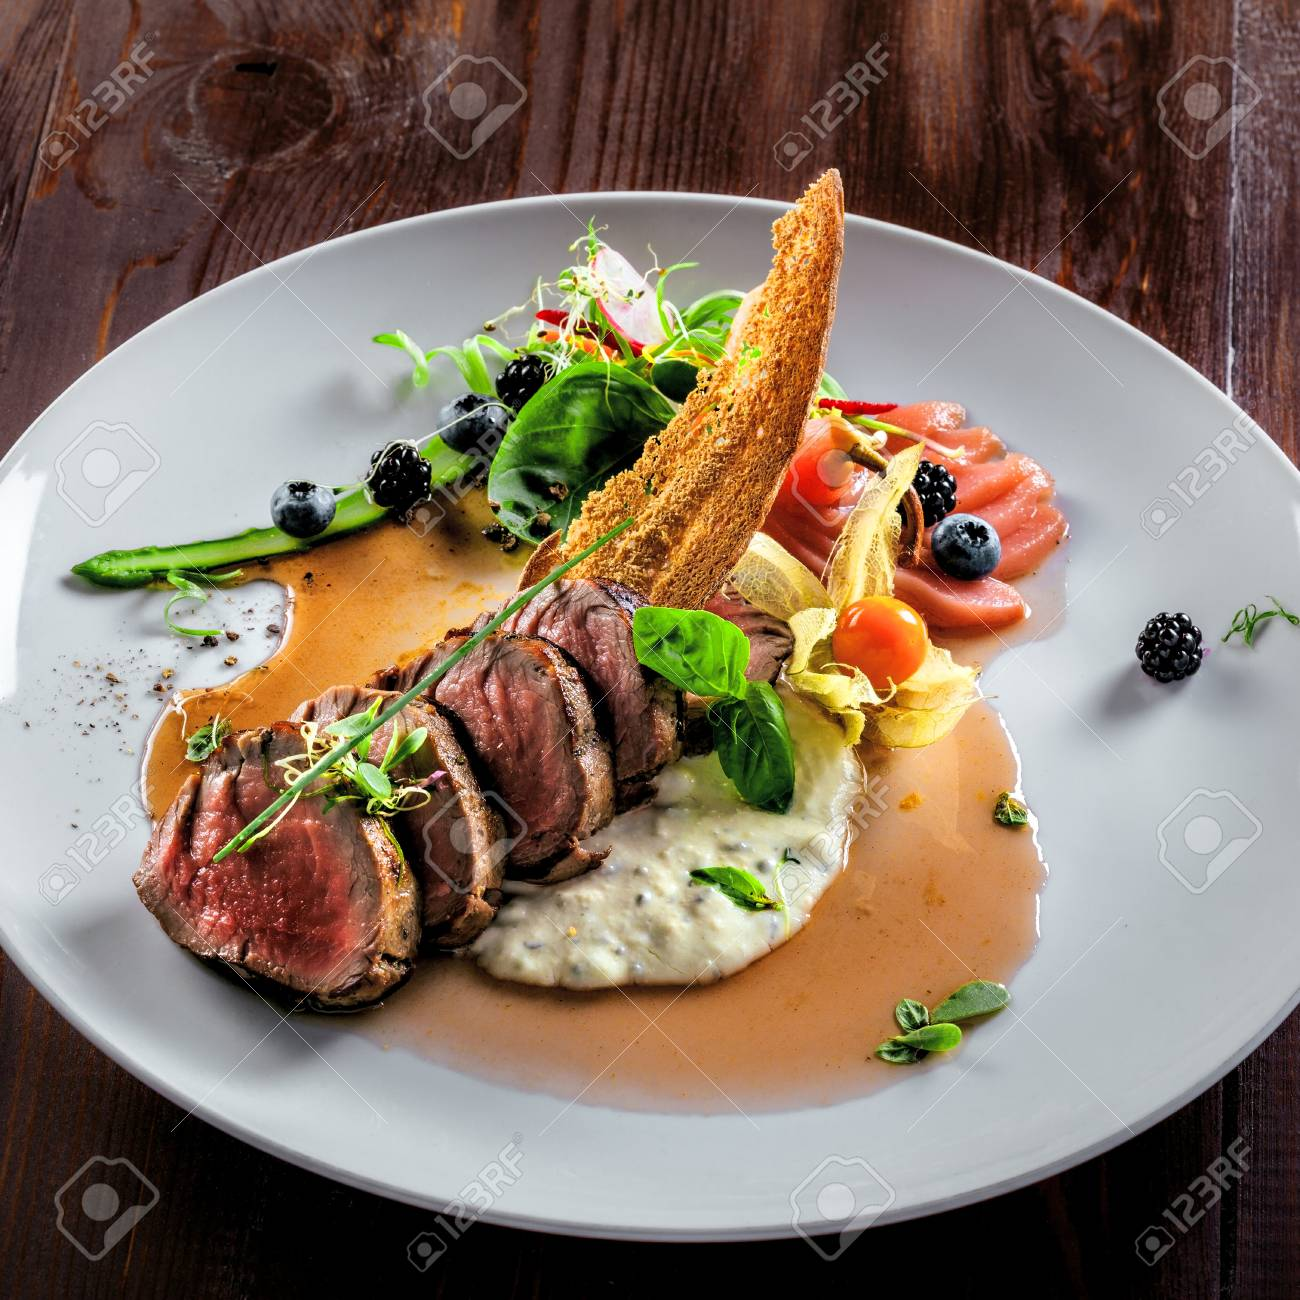 Gesundes Leckeres Essen Stock Photo